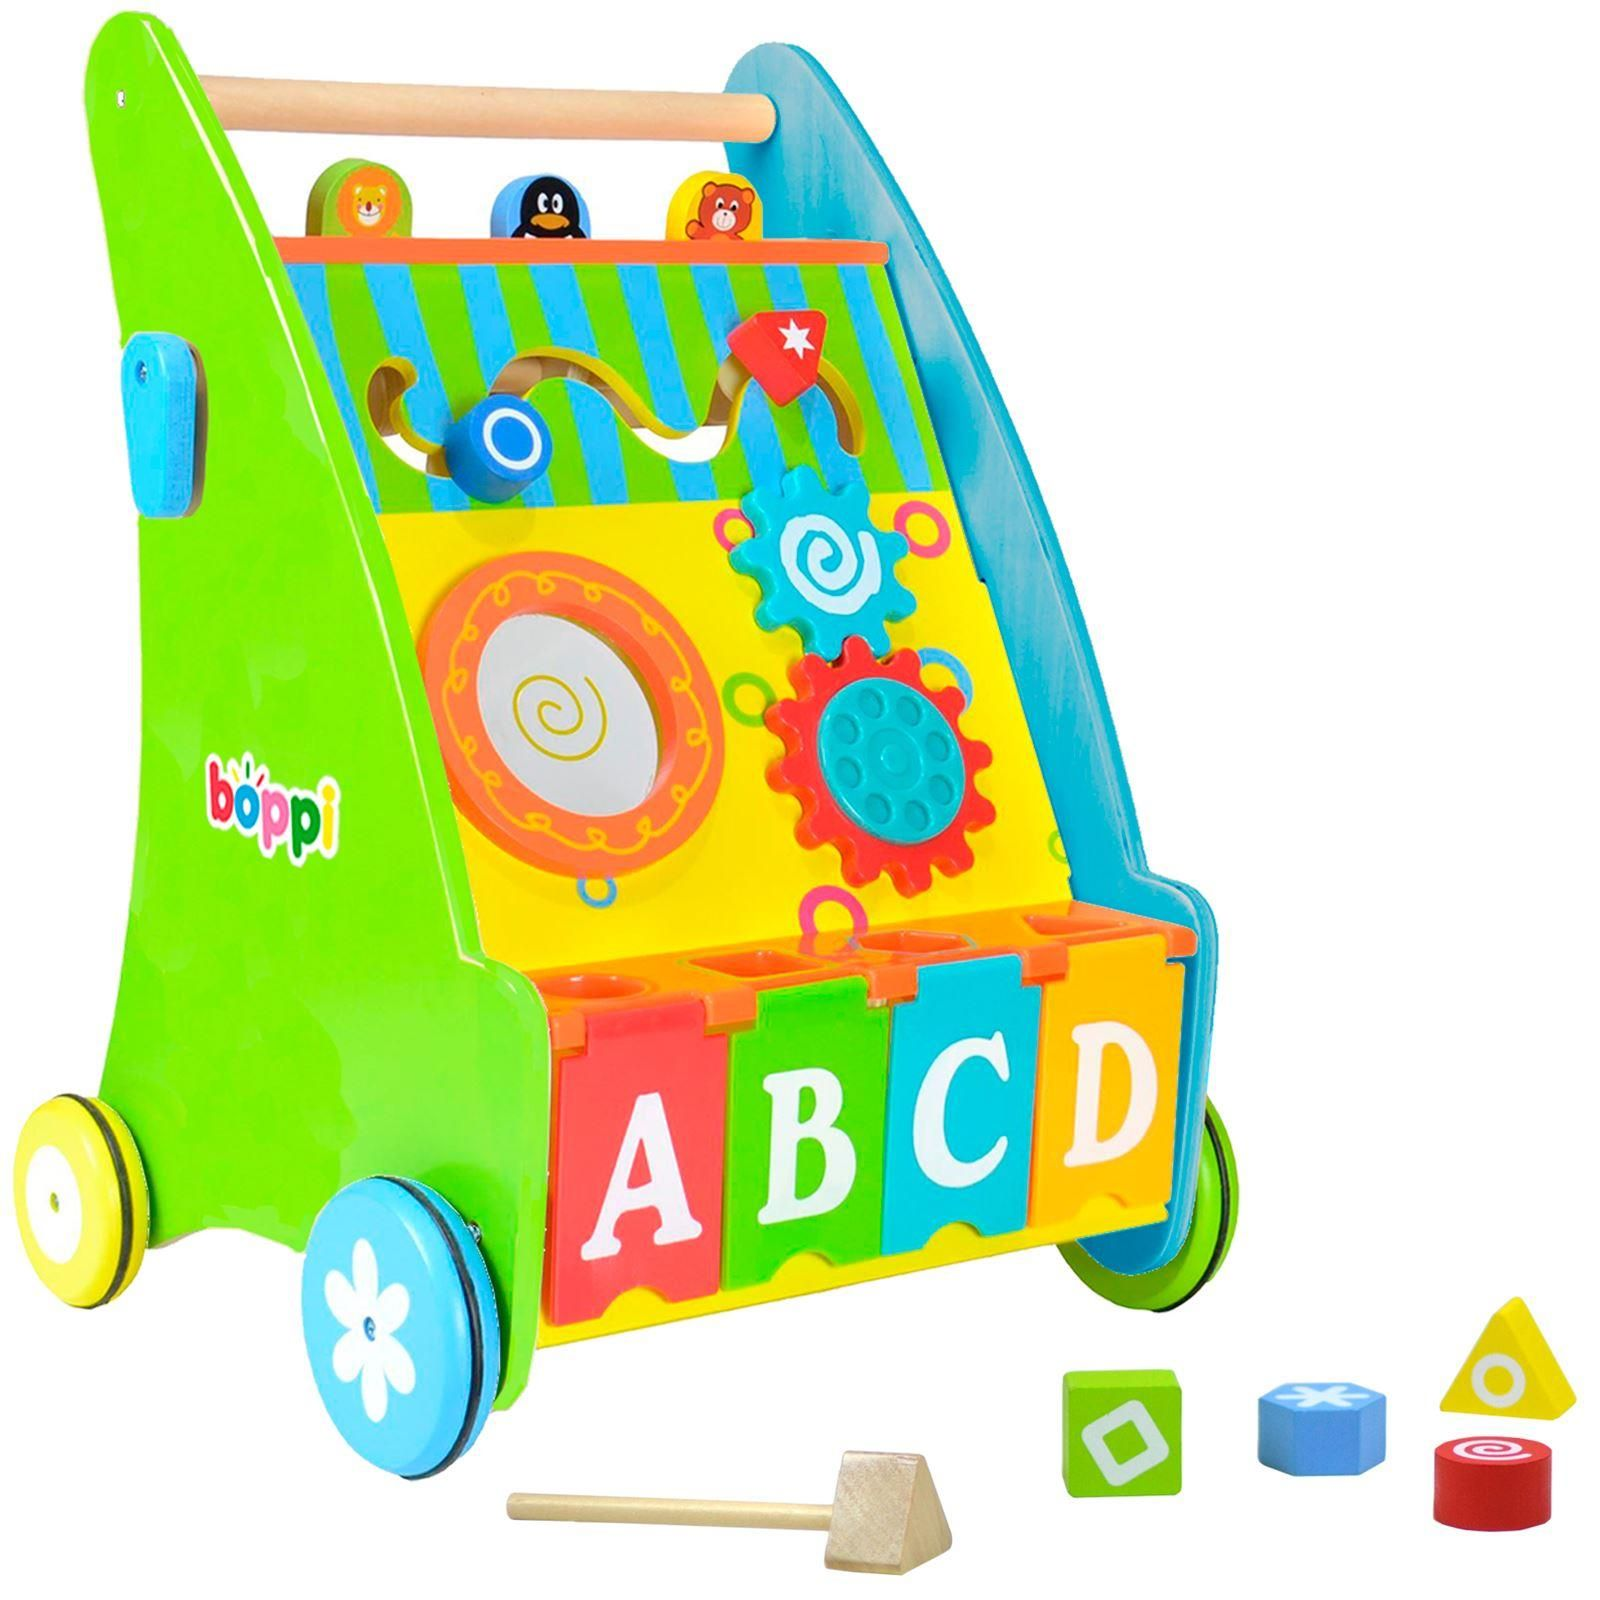 boppi Wooden Activity Baby Walker